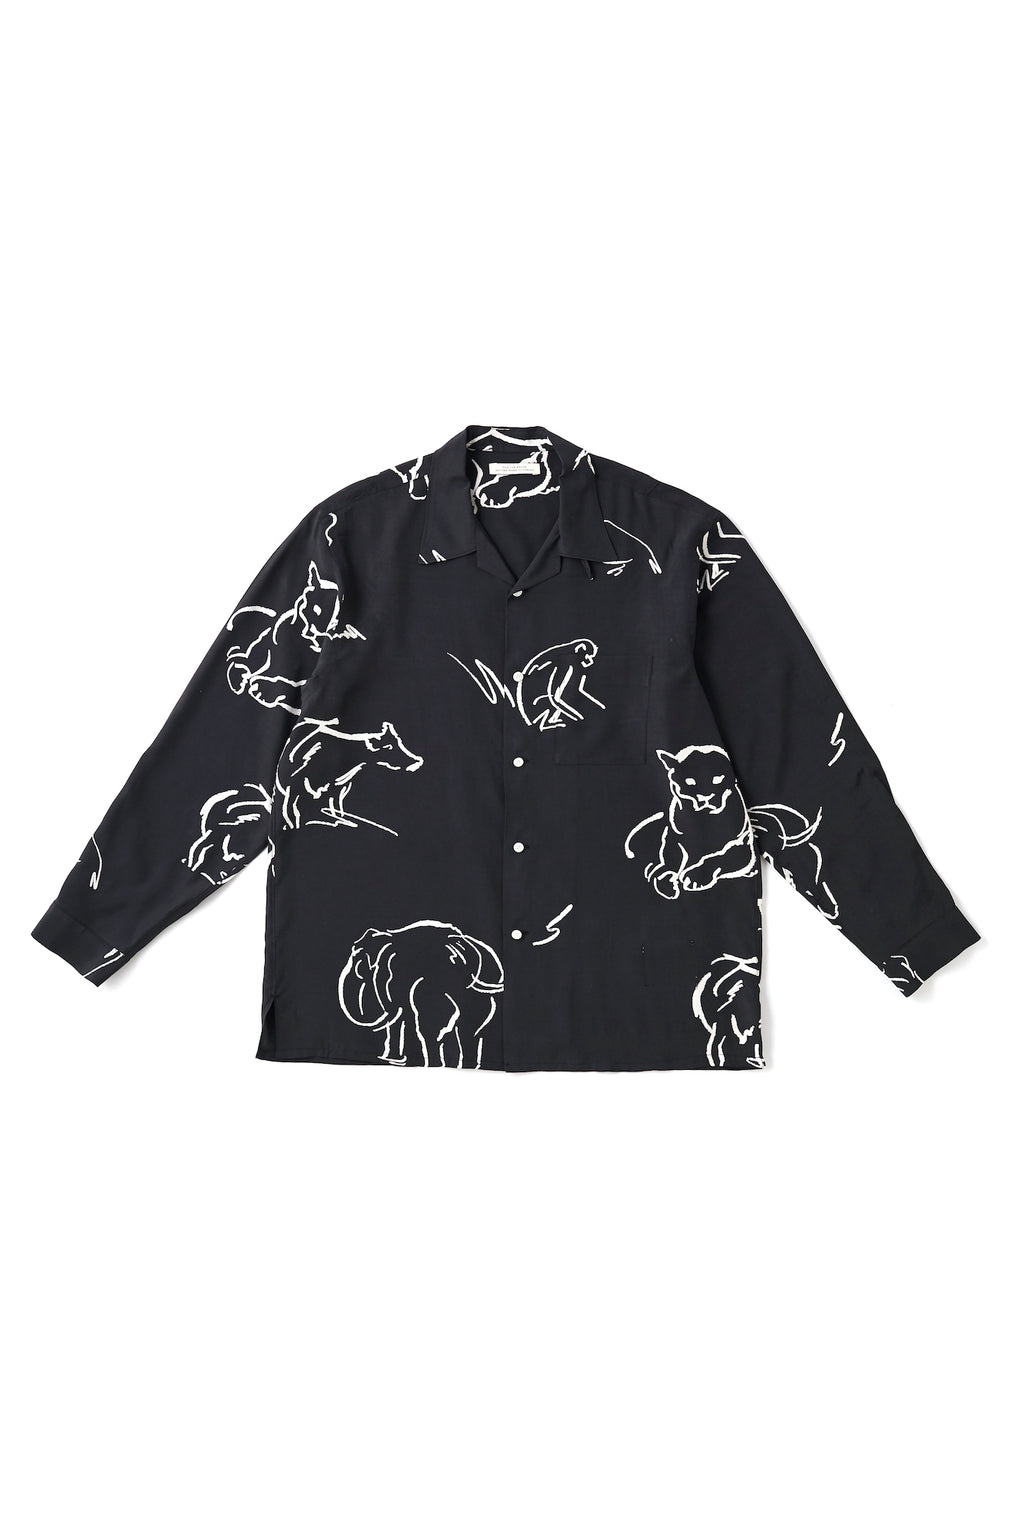 ORIGINAL PRINTED OPEN COLLAR SHIRTS (-DRAWING- long sleeve) - 201OJ-SH06